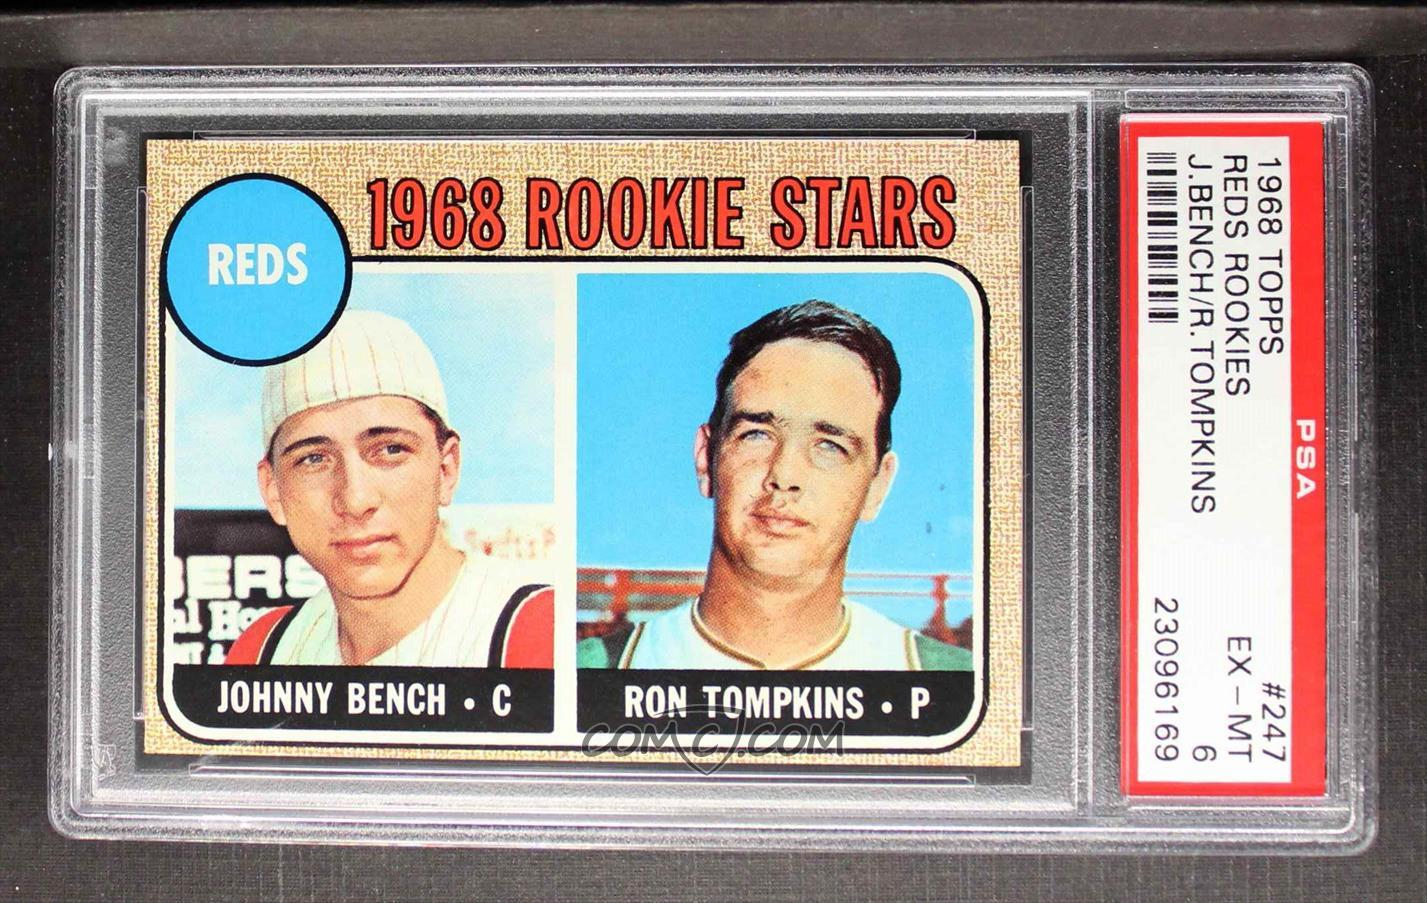 1968 Topps Base 247 1 Reds Rookie Stars Johnny Bench Ron Tompkins Impressed Tne Reds